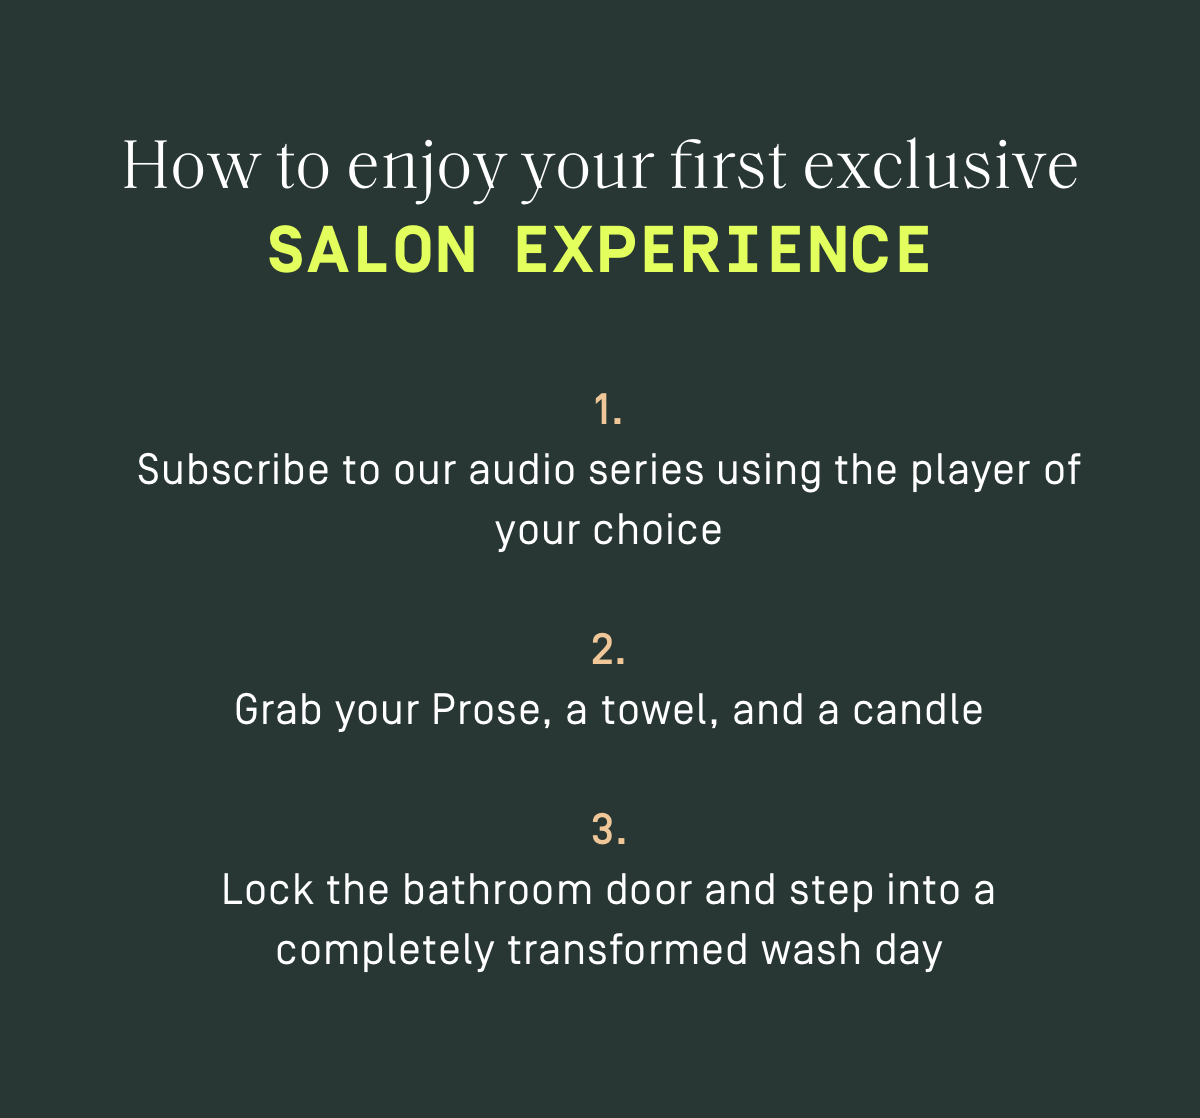 How to enjoy your first exclusive Salon Experience: 1. Subscribe to our audio series using the player of your choice. 2. Grab your Prose, a towel, and a candle, 3. Lock the bathroom door and step into a completely transformed wash day.